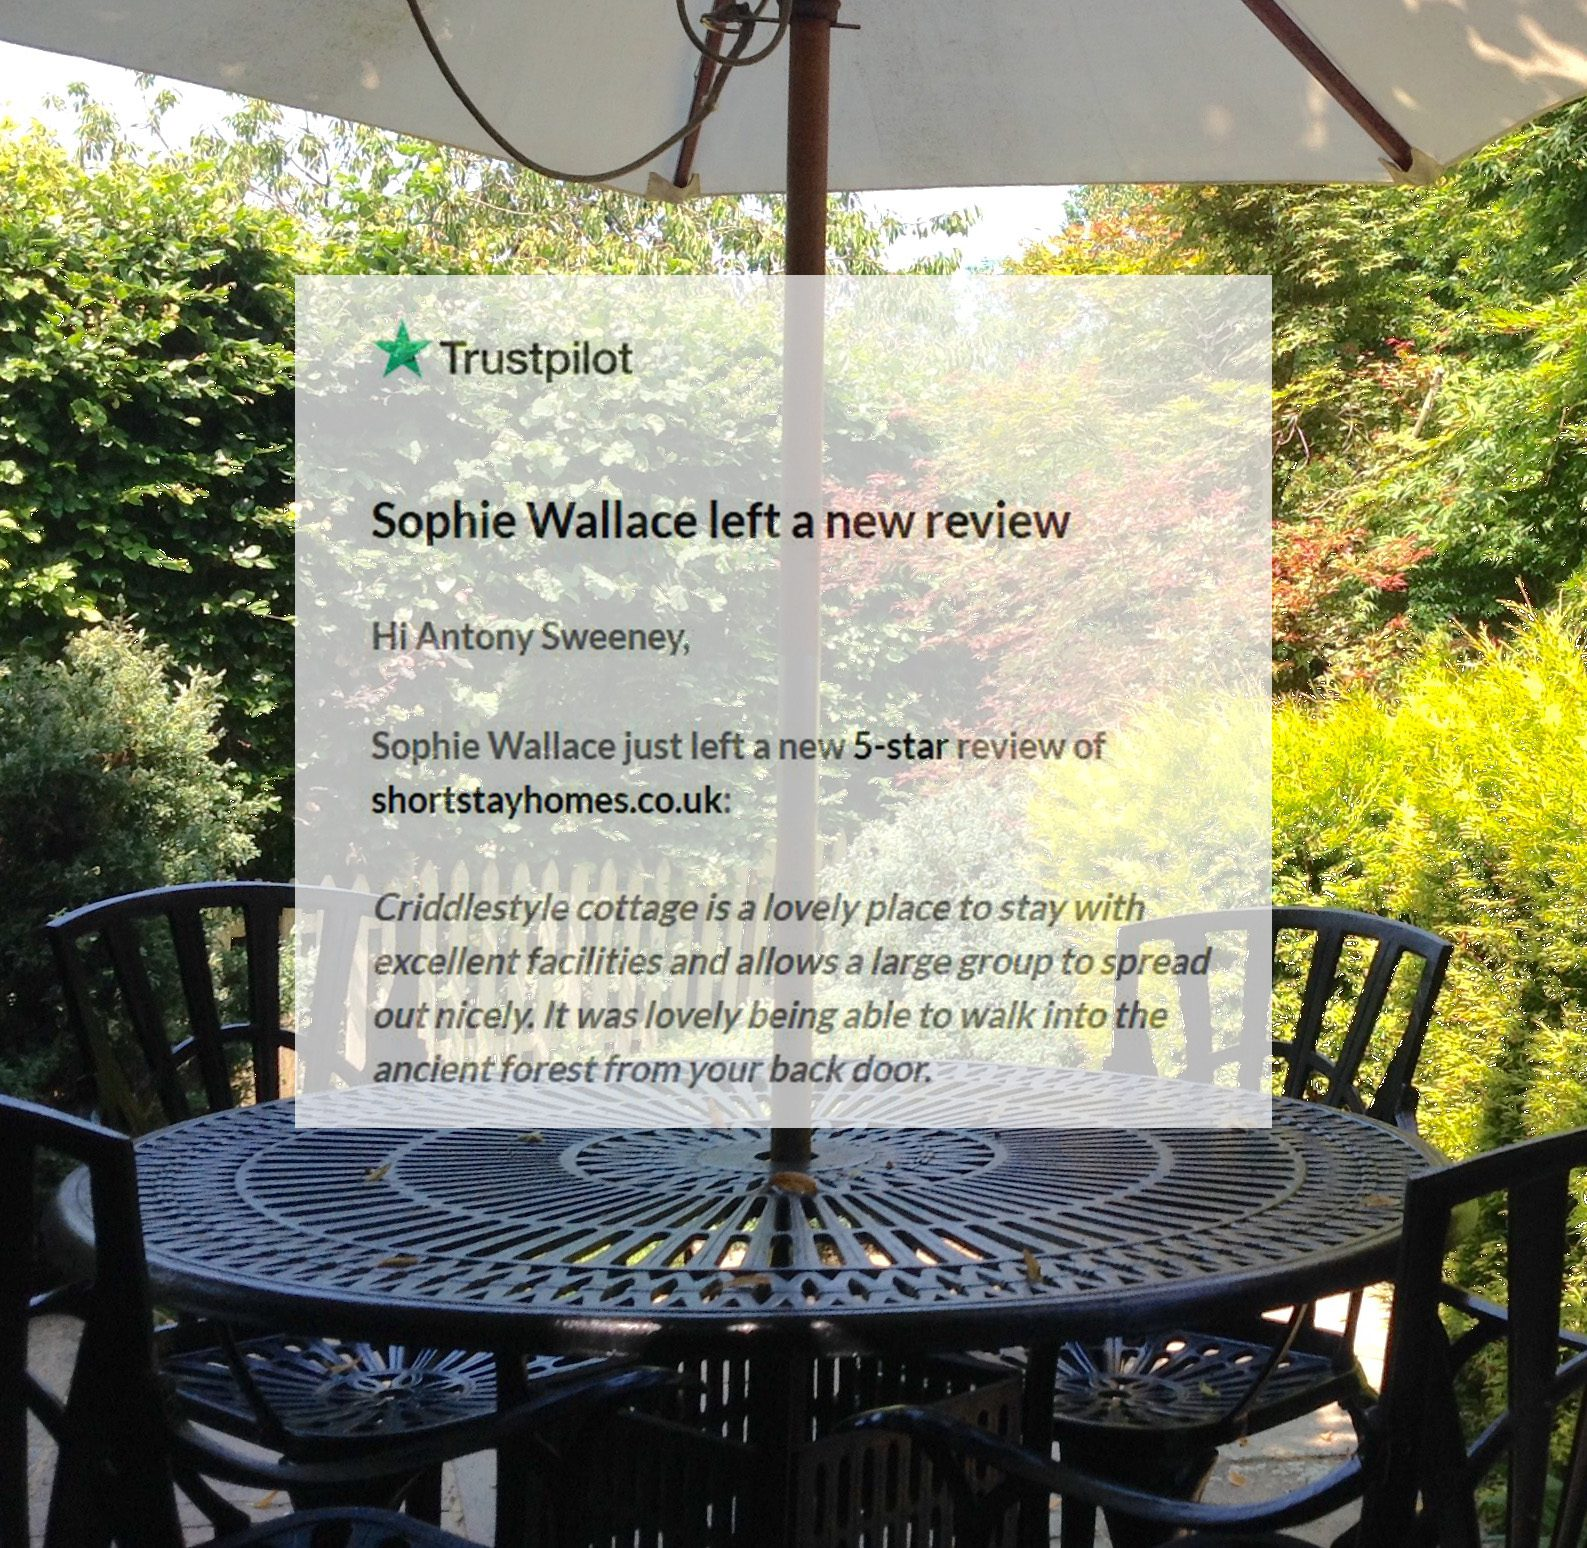 Criddlestyle Cottage 5-star Airbnb review